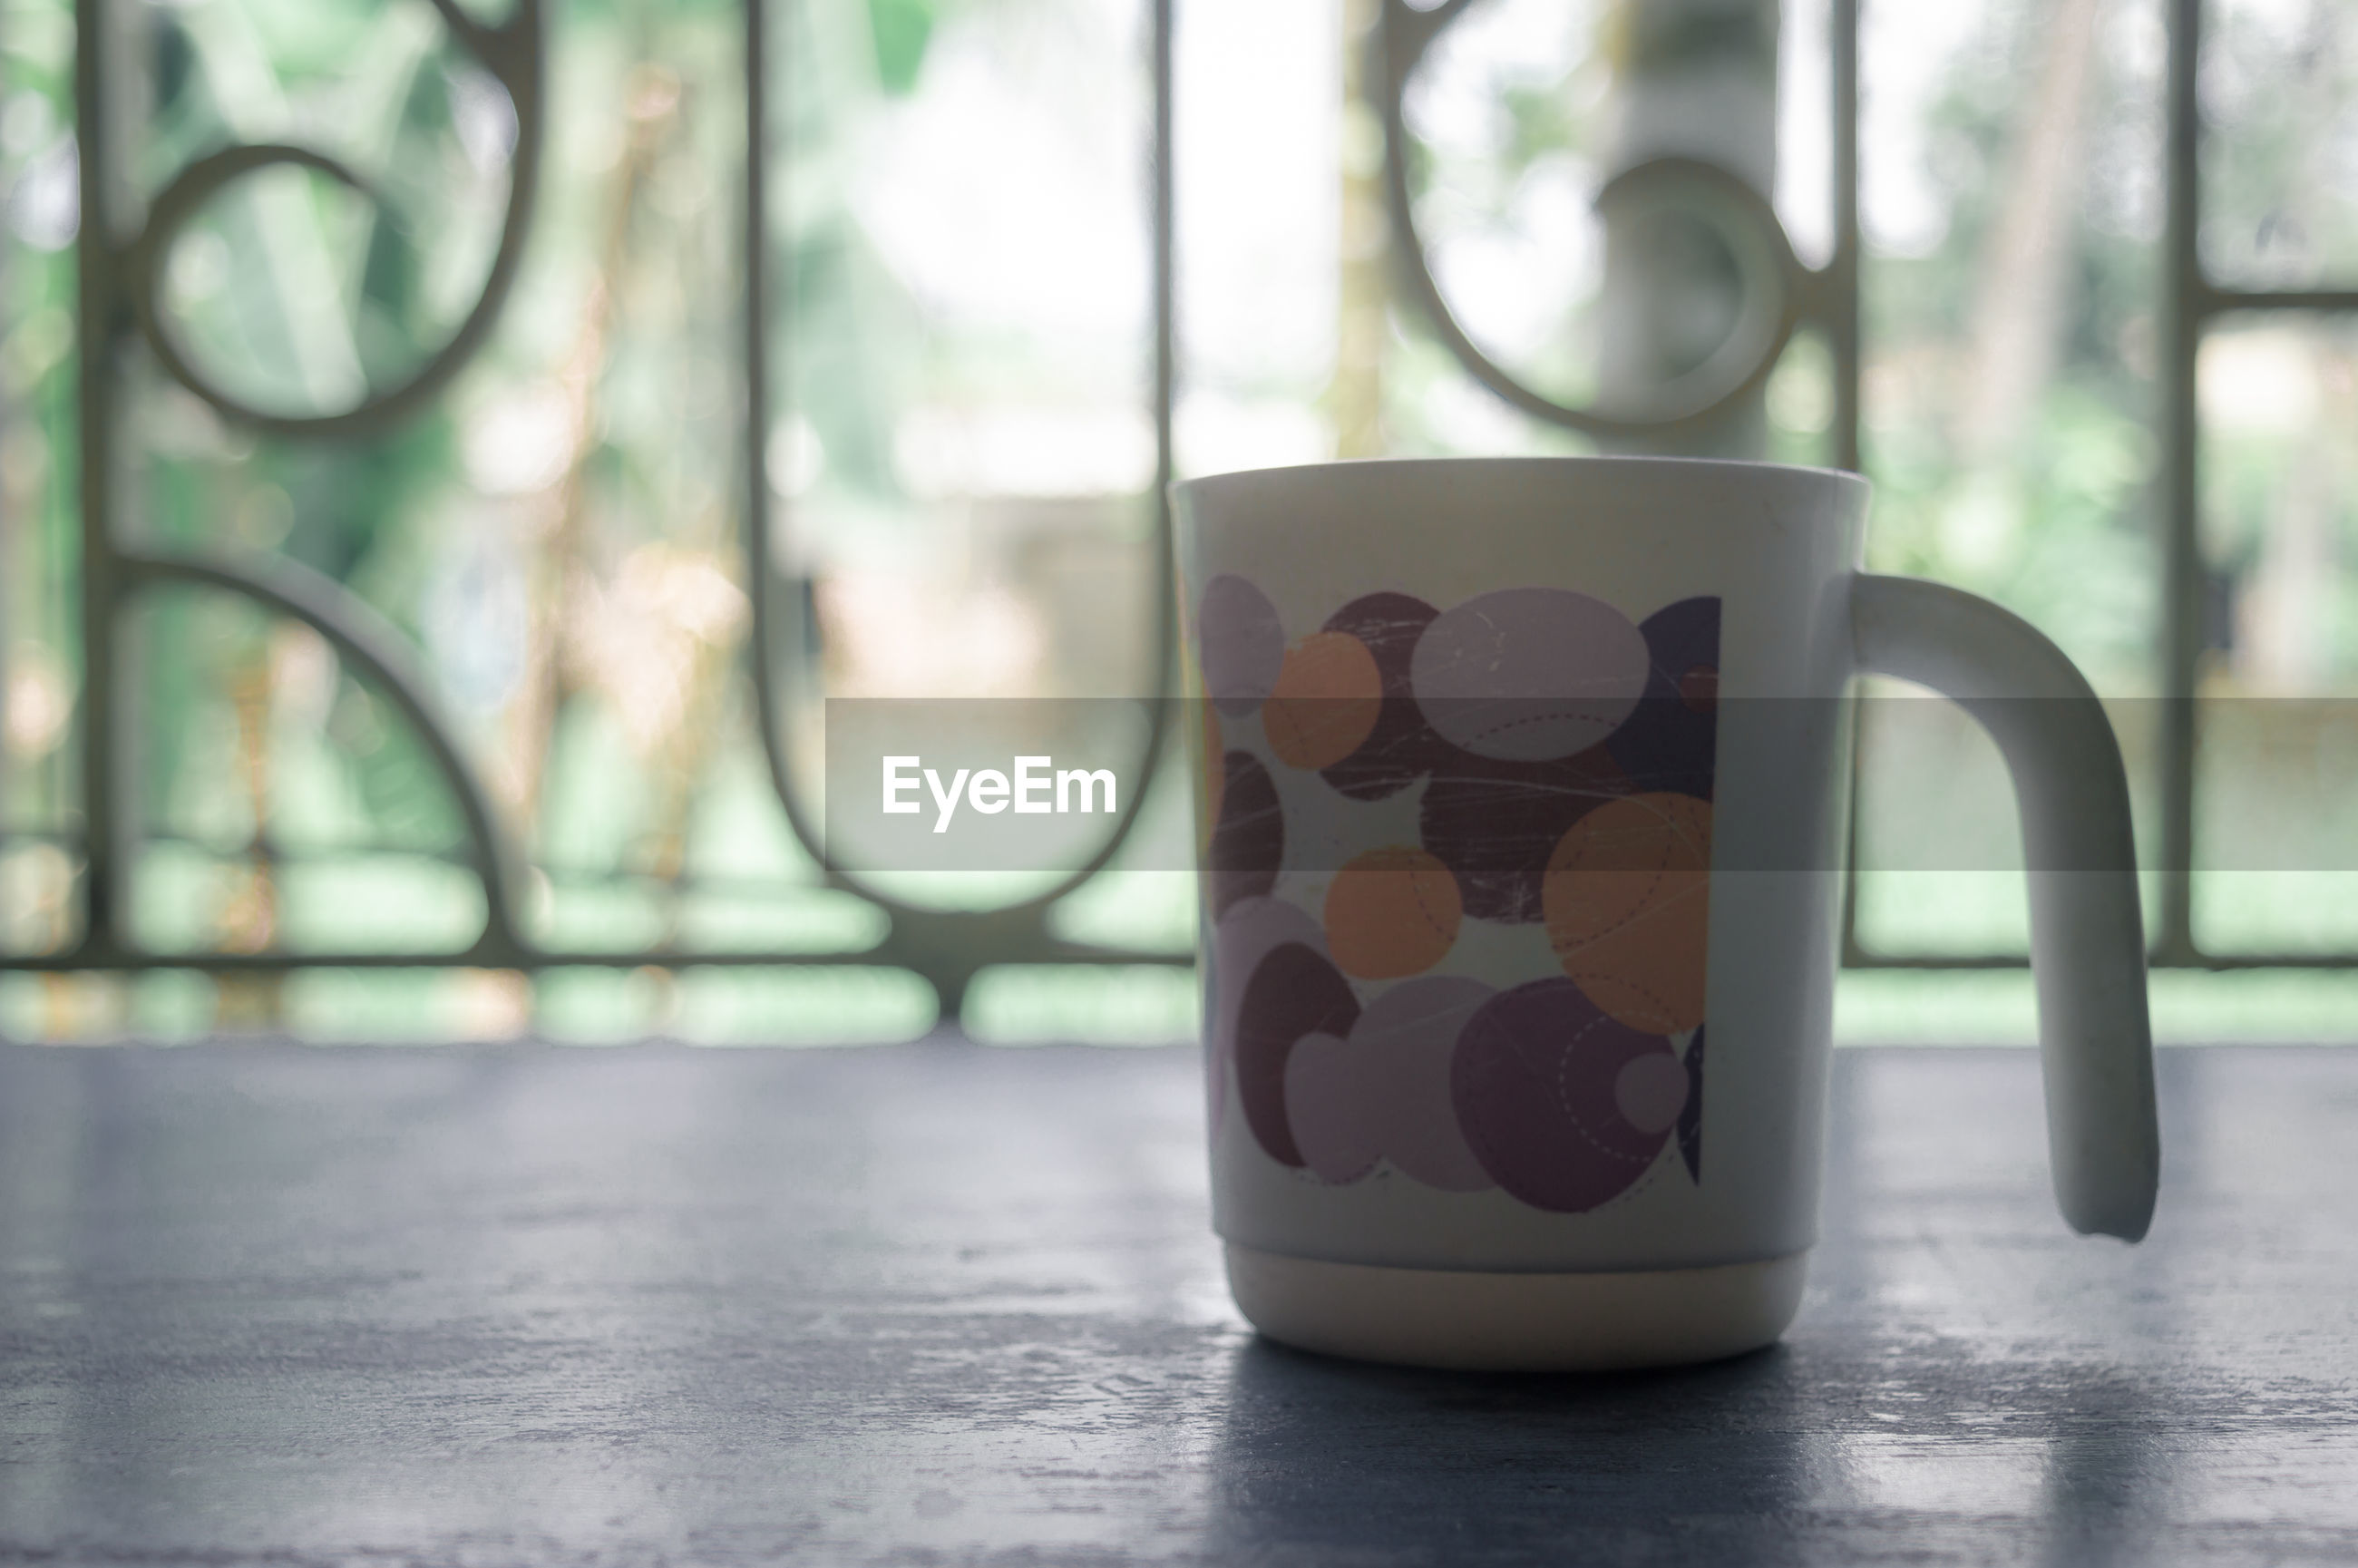 CLOSE-UP OF COFFEE CUP ON TABLE AGAINST WINDOW